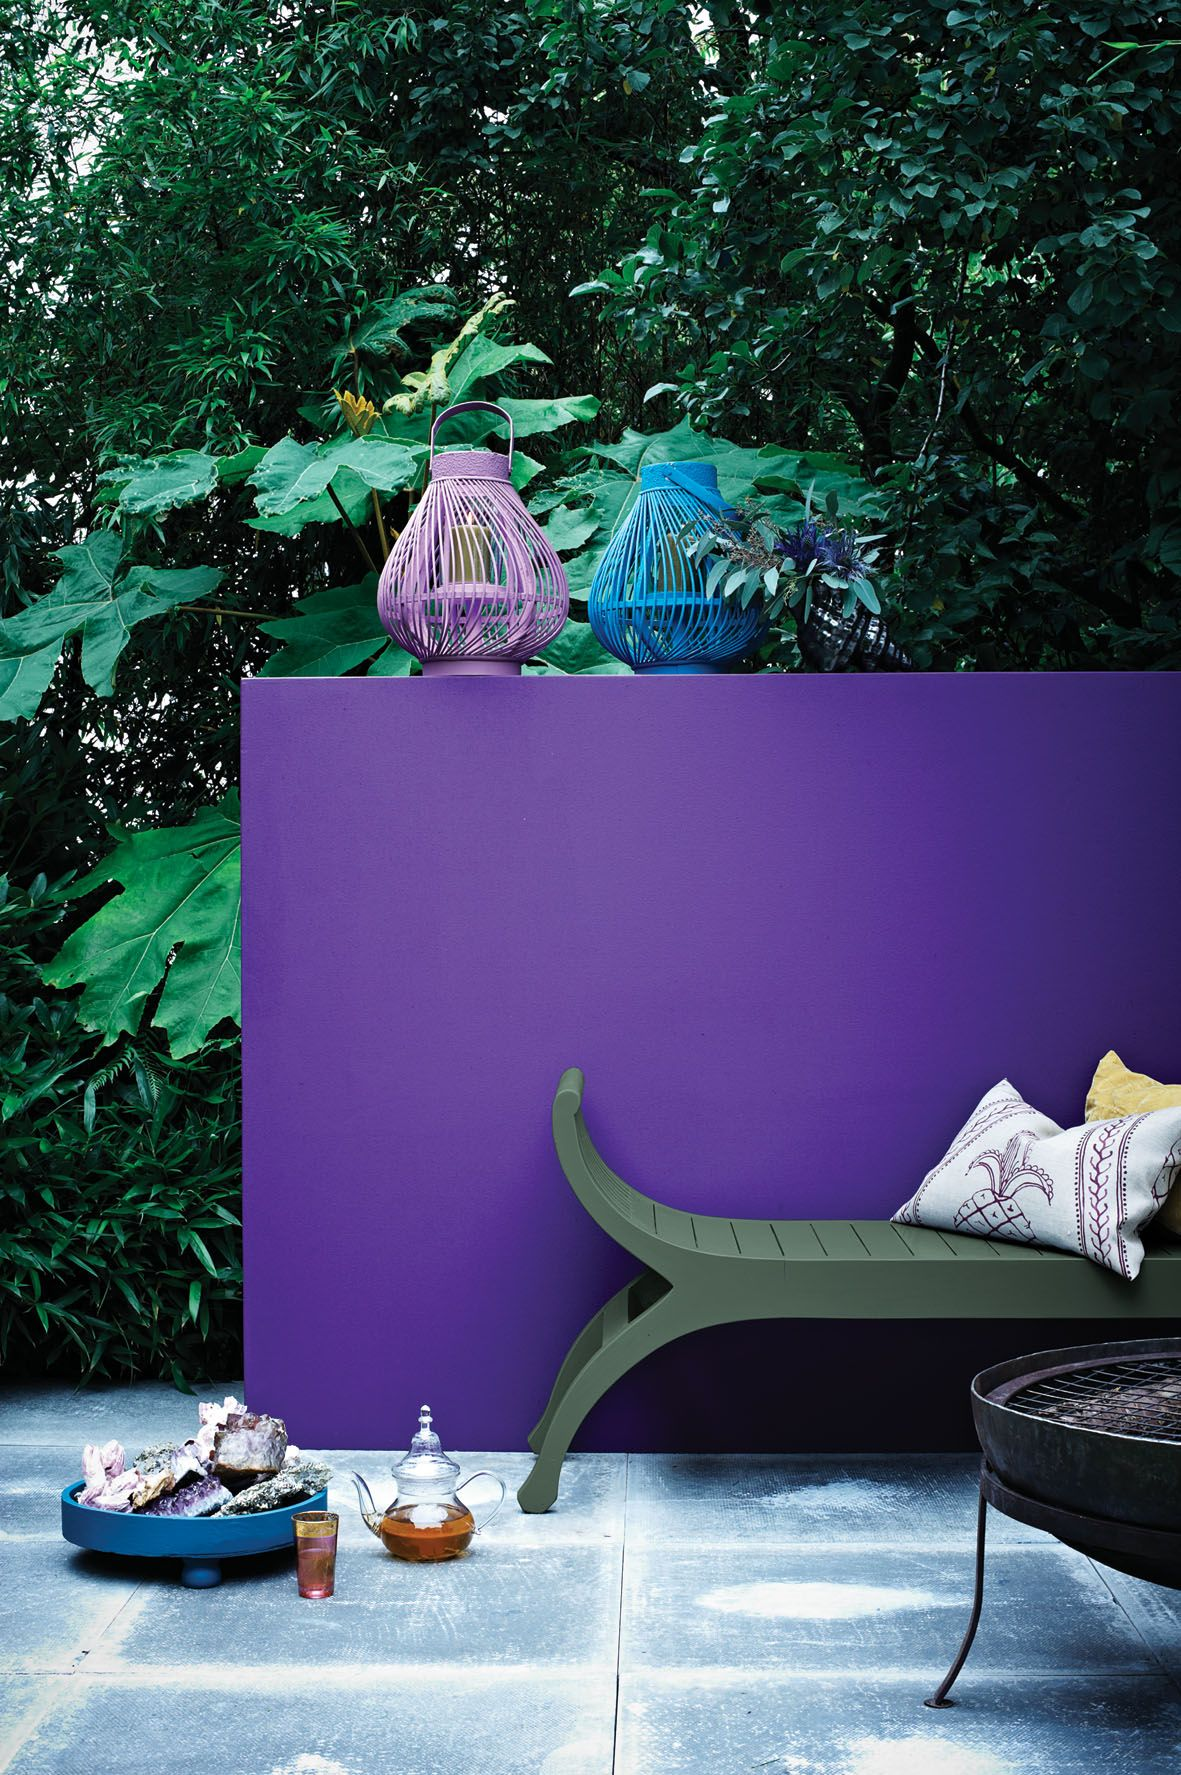 sandtex feature wall in purple frenzy | great outdoors | pinterest